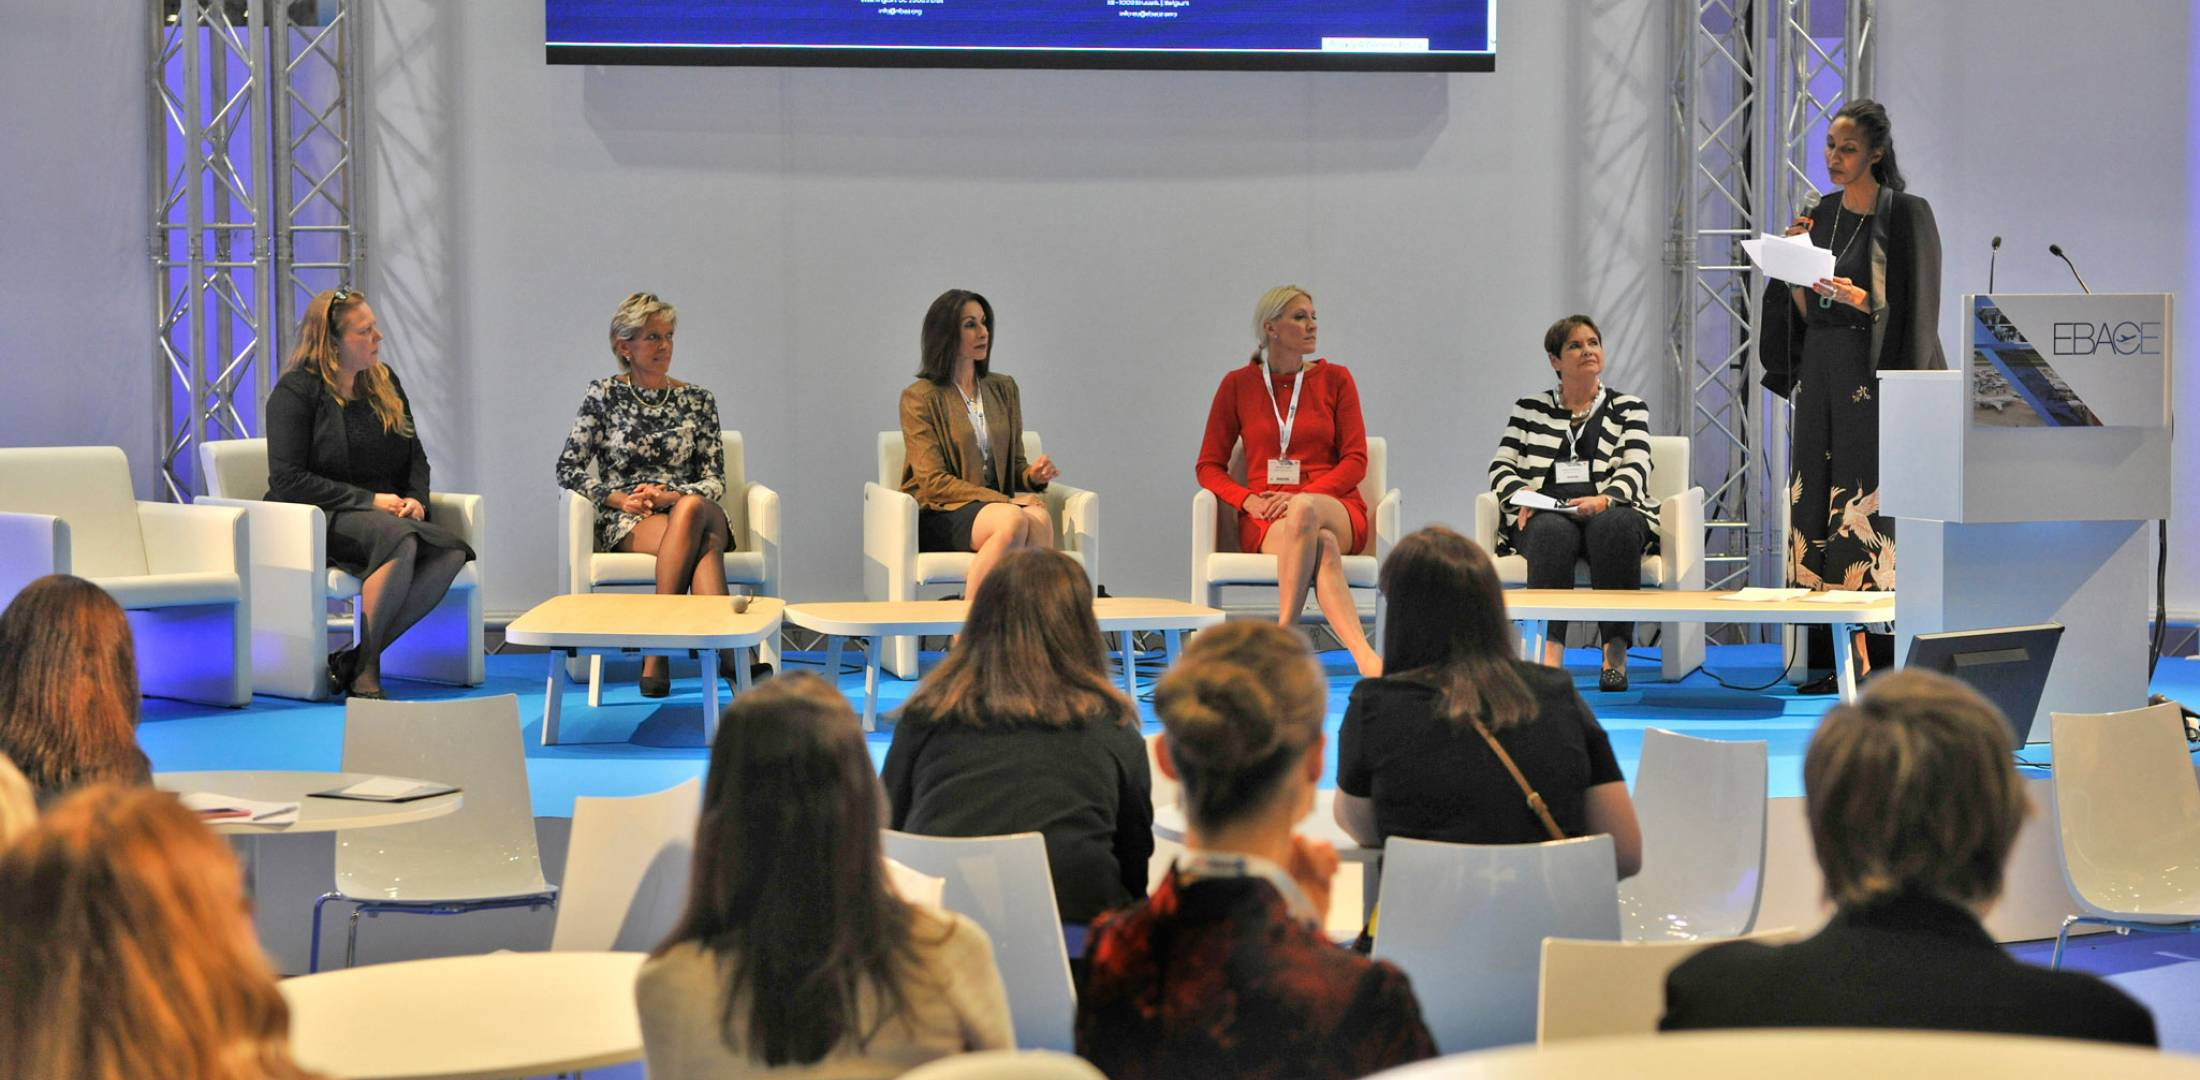 group of women at a conference